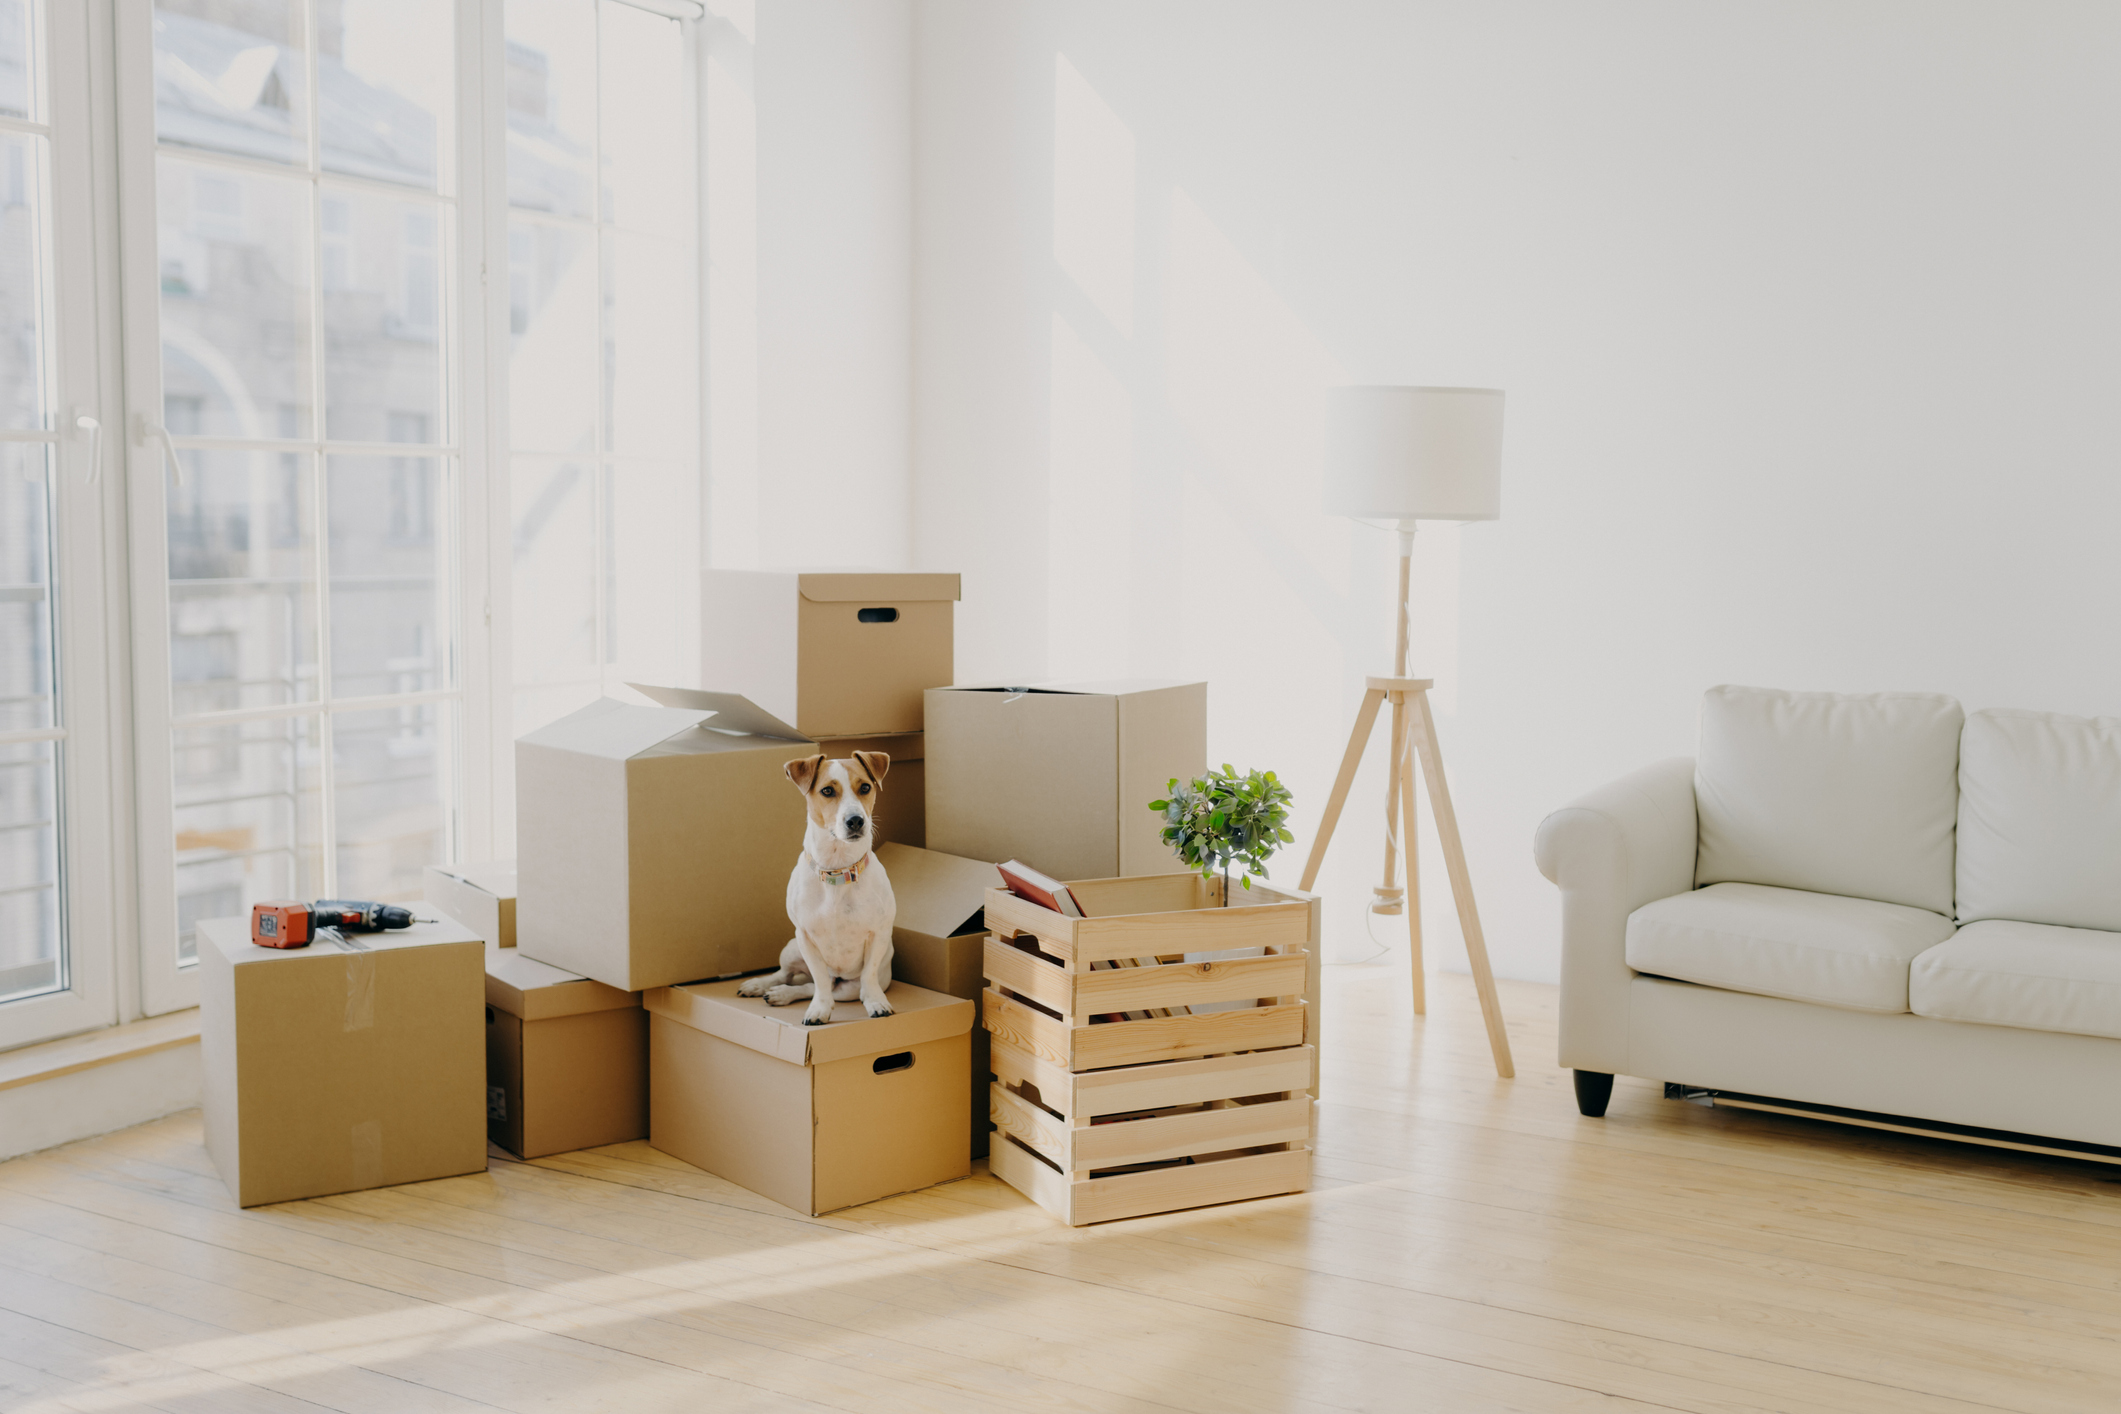 Where to Get Moving Boxes: 4 Budget-Friendly Ideas